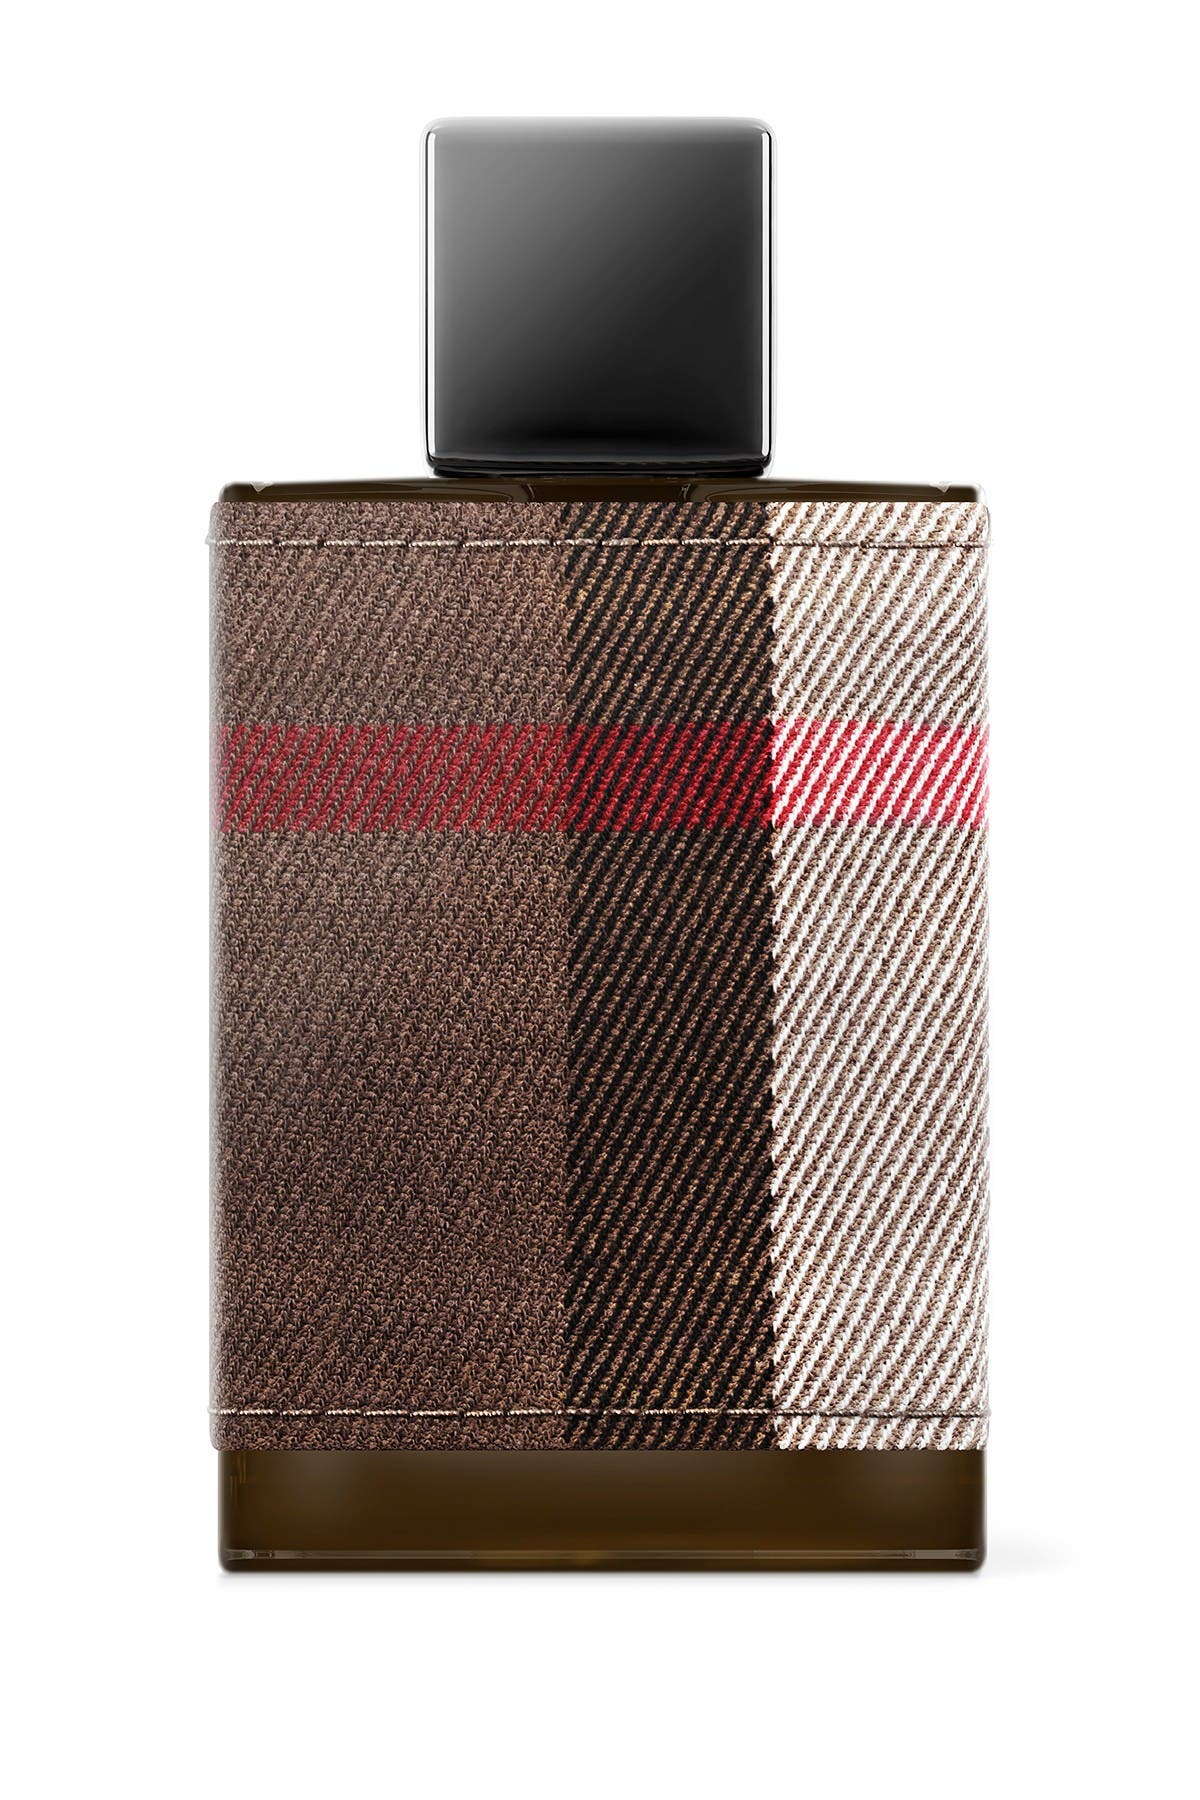 Image of Burberry London for Men Eau de Toilette - 1.7 fl oz.